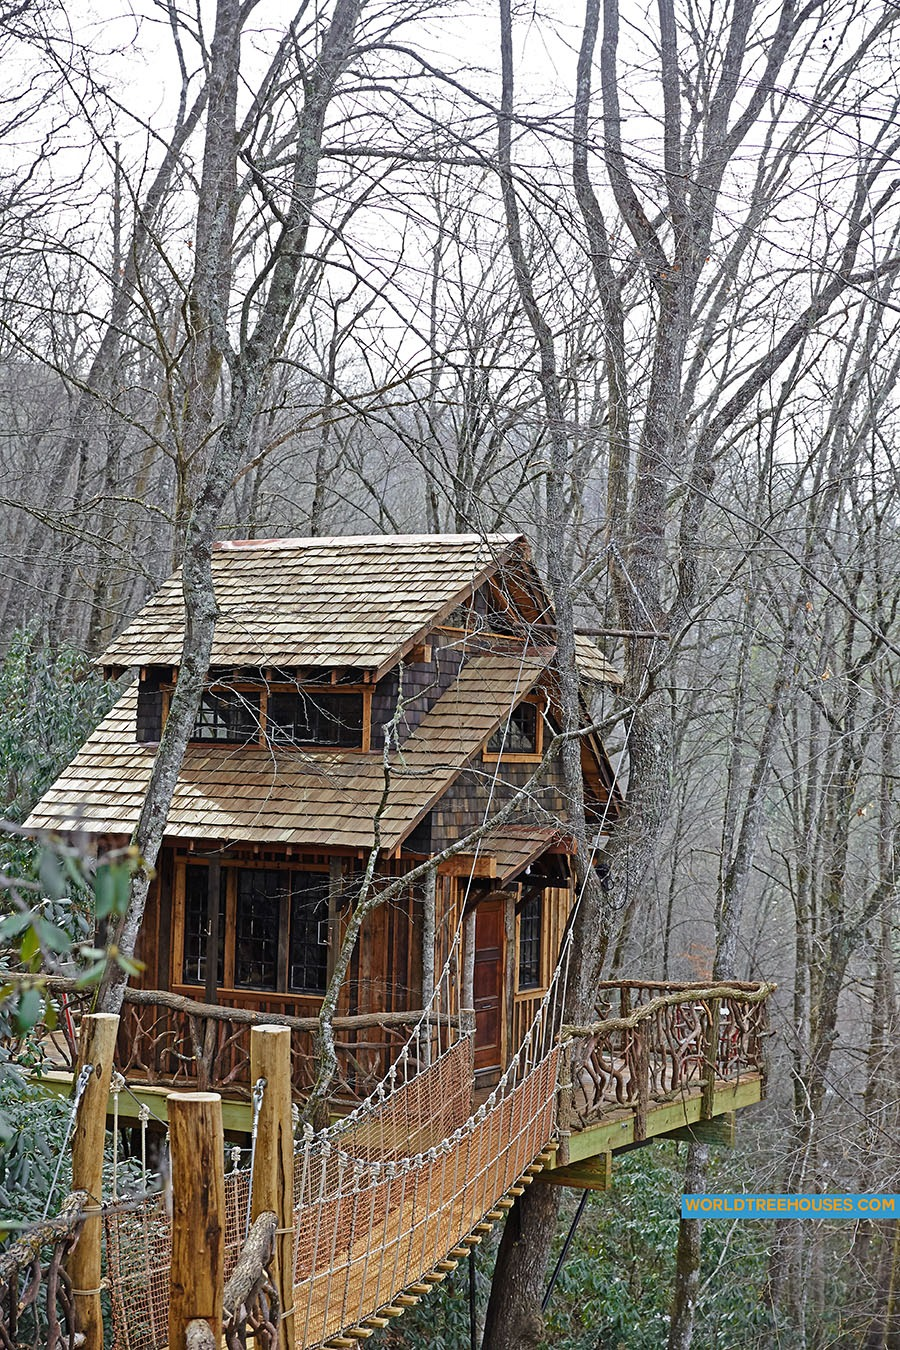 NC tree house builder : Panthertown treehouse from above